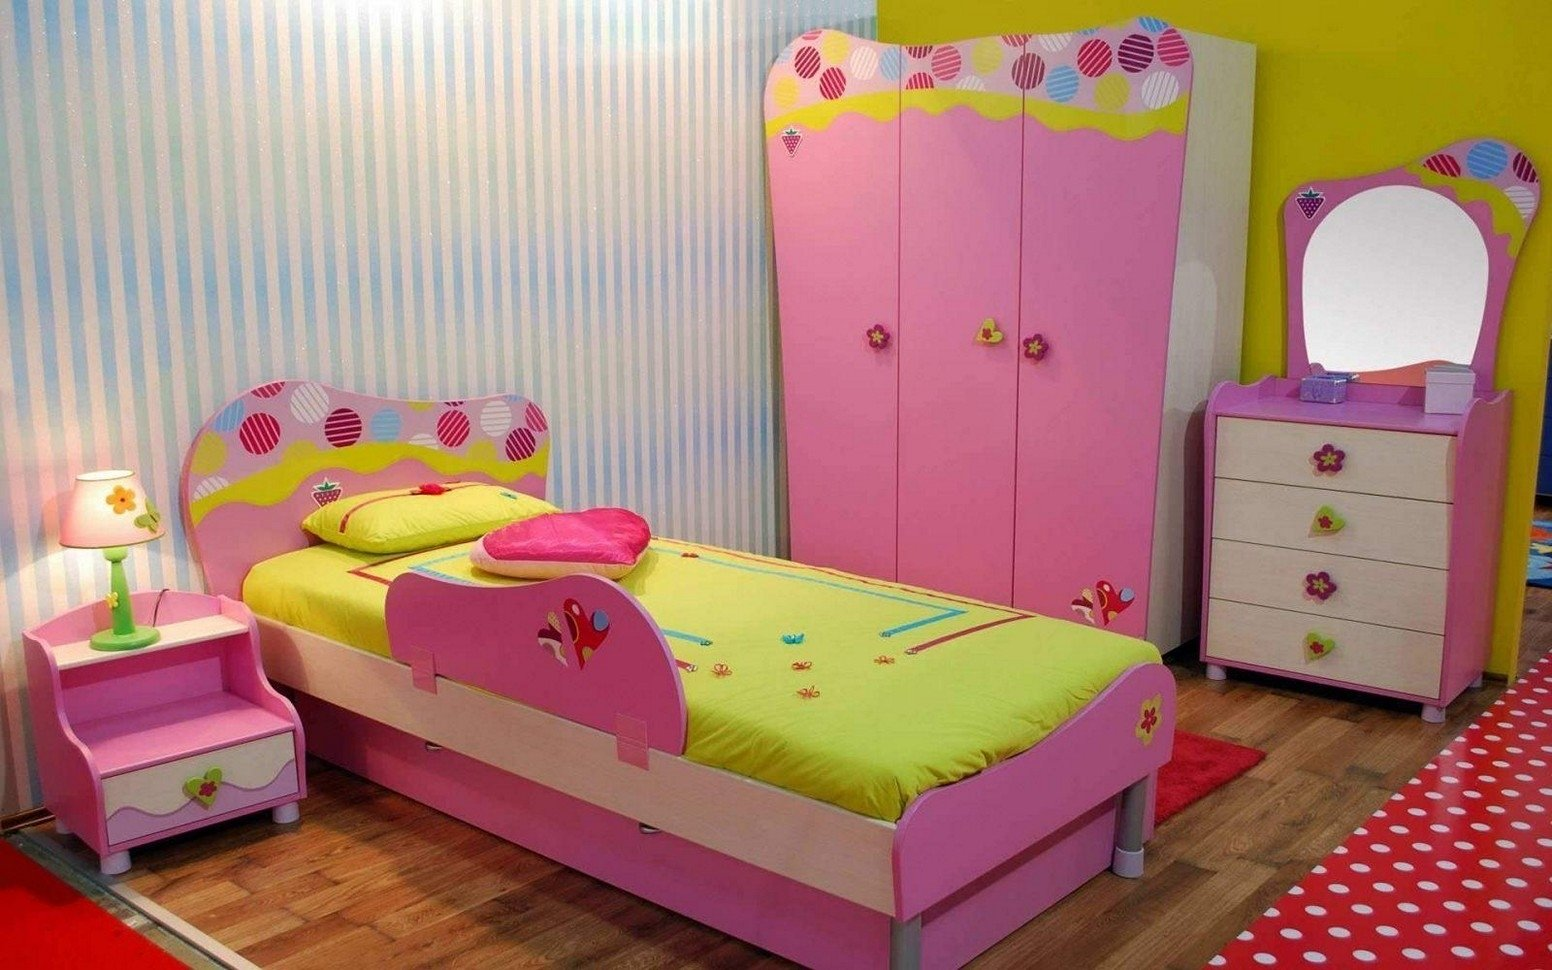 10 Wonderful Painting Ideas For Girls Room girls room paint ideas stripes